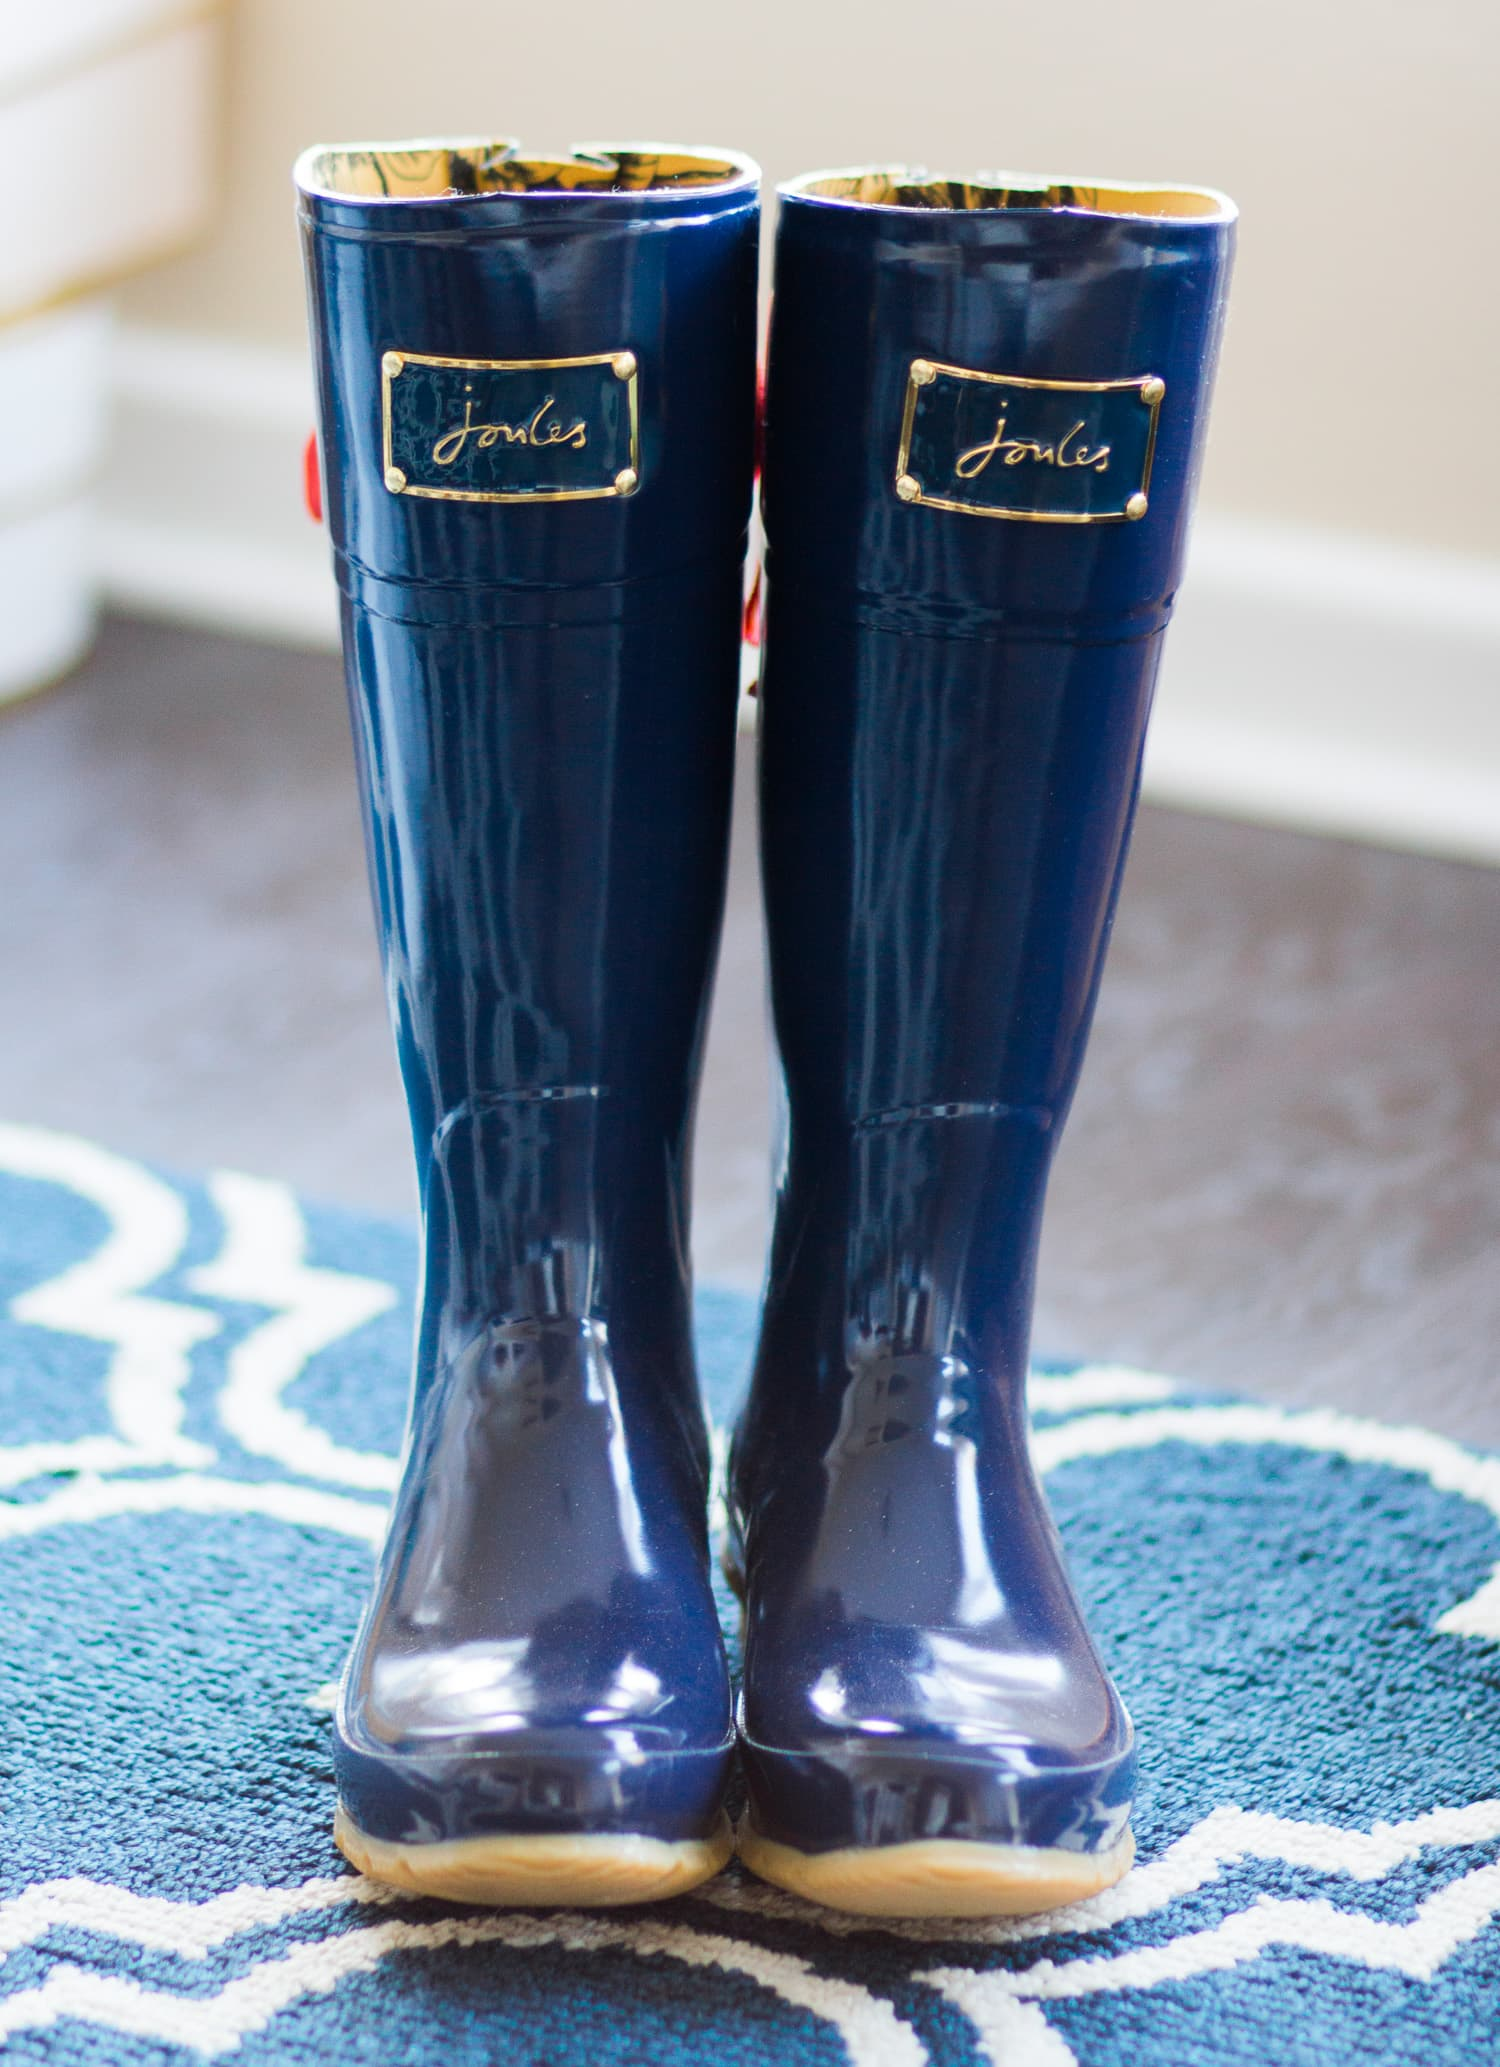 joules-evedon-rain-boots-navy-red-bow-6616